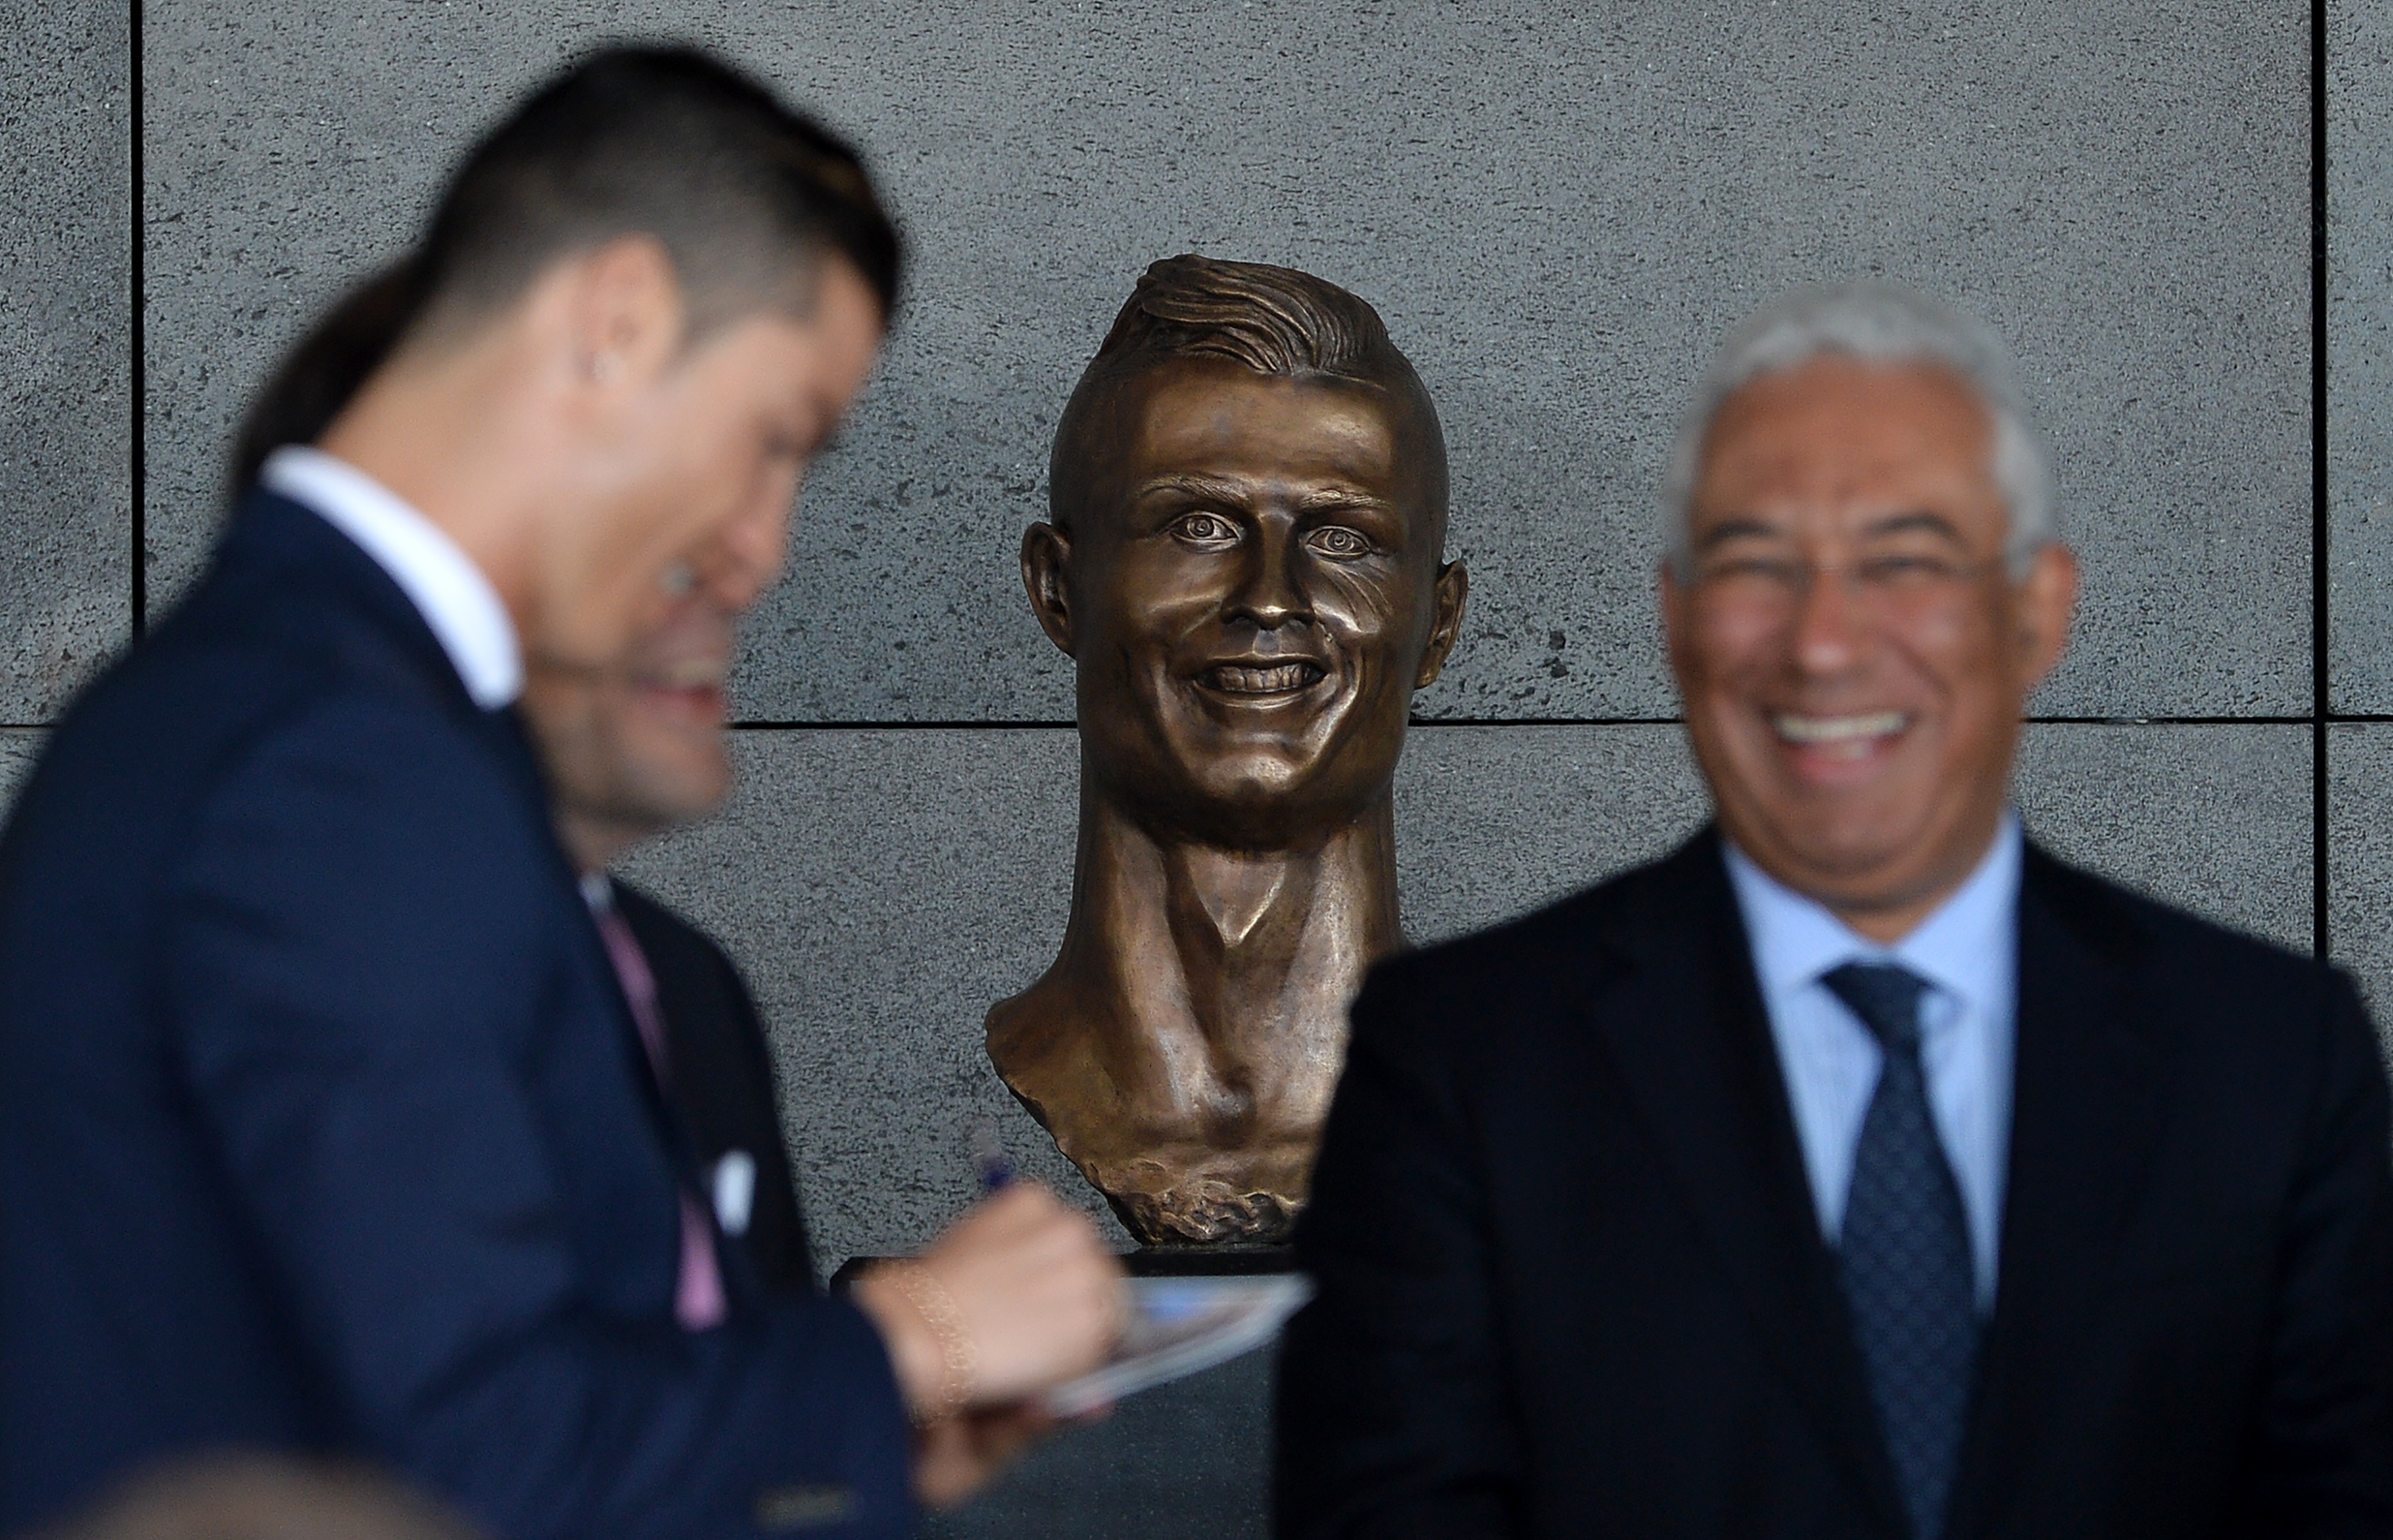 Ceremony at Madeira Airport to rename it Cristiano Ronaldo Airport